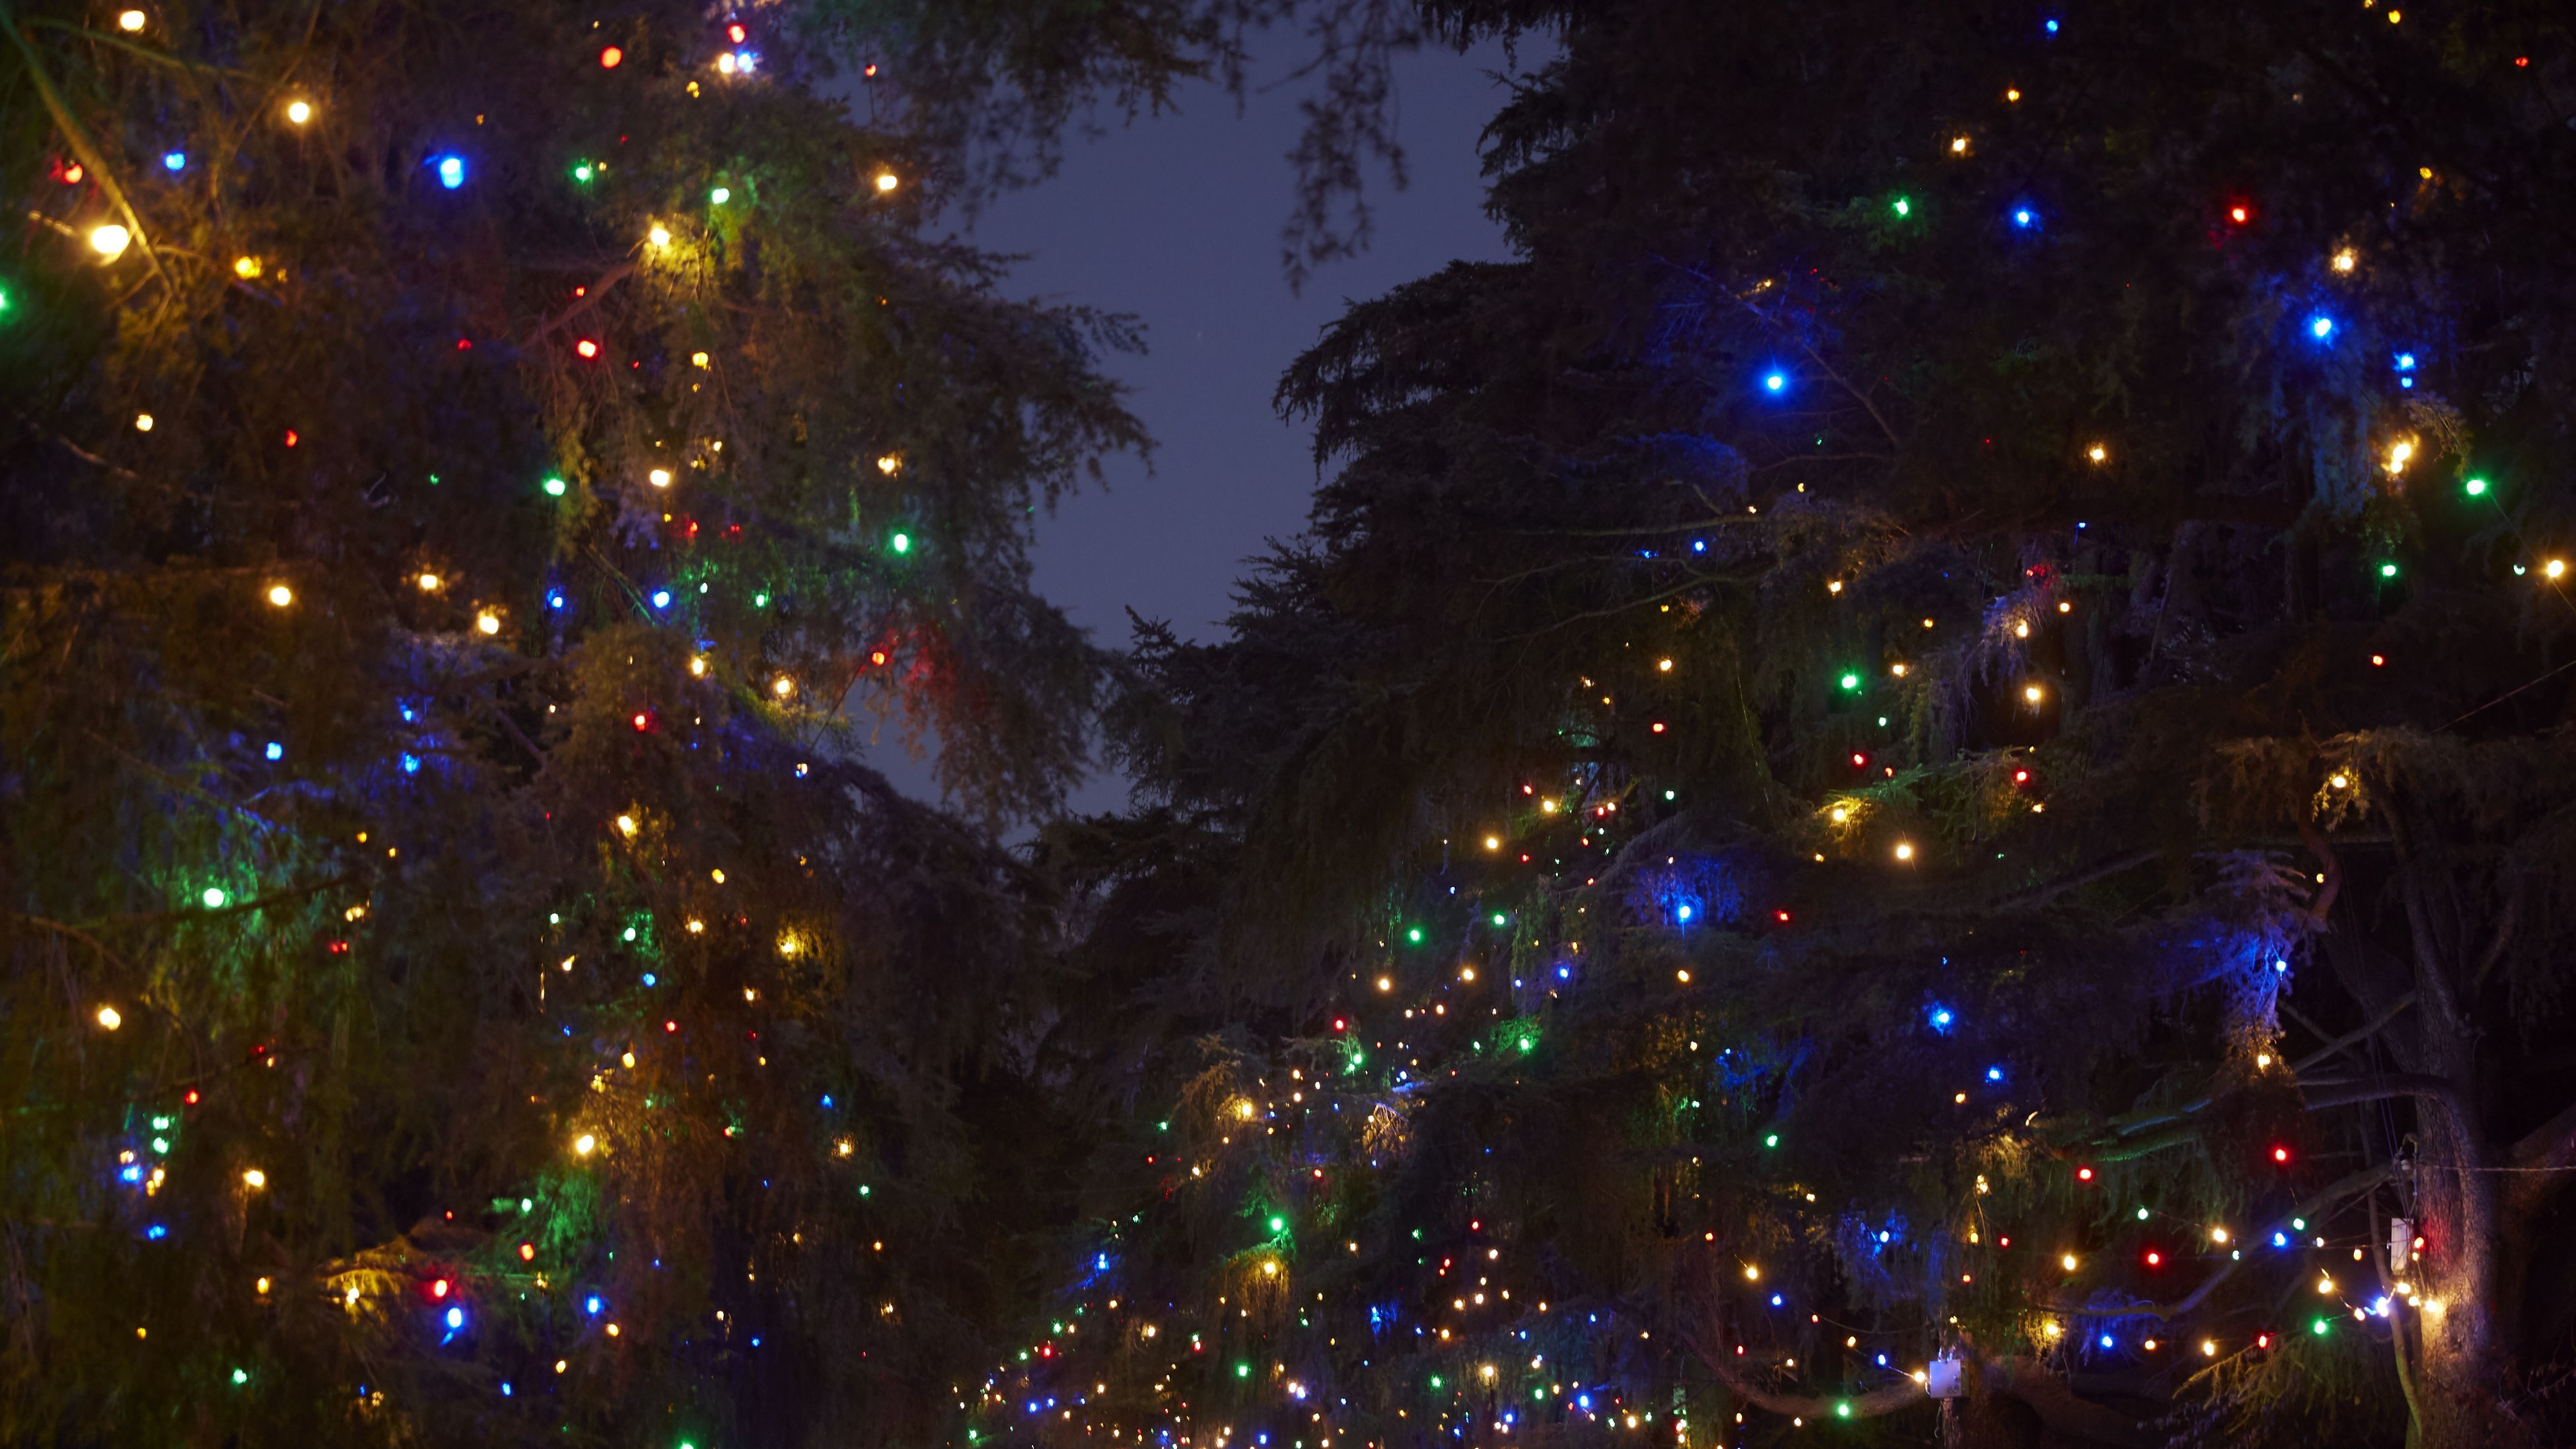 The spectacle of Altadena's Christmas Tree Lane